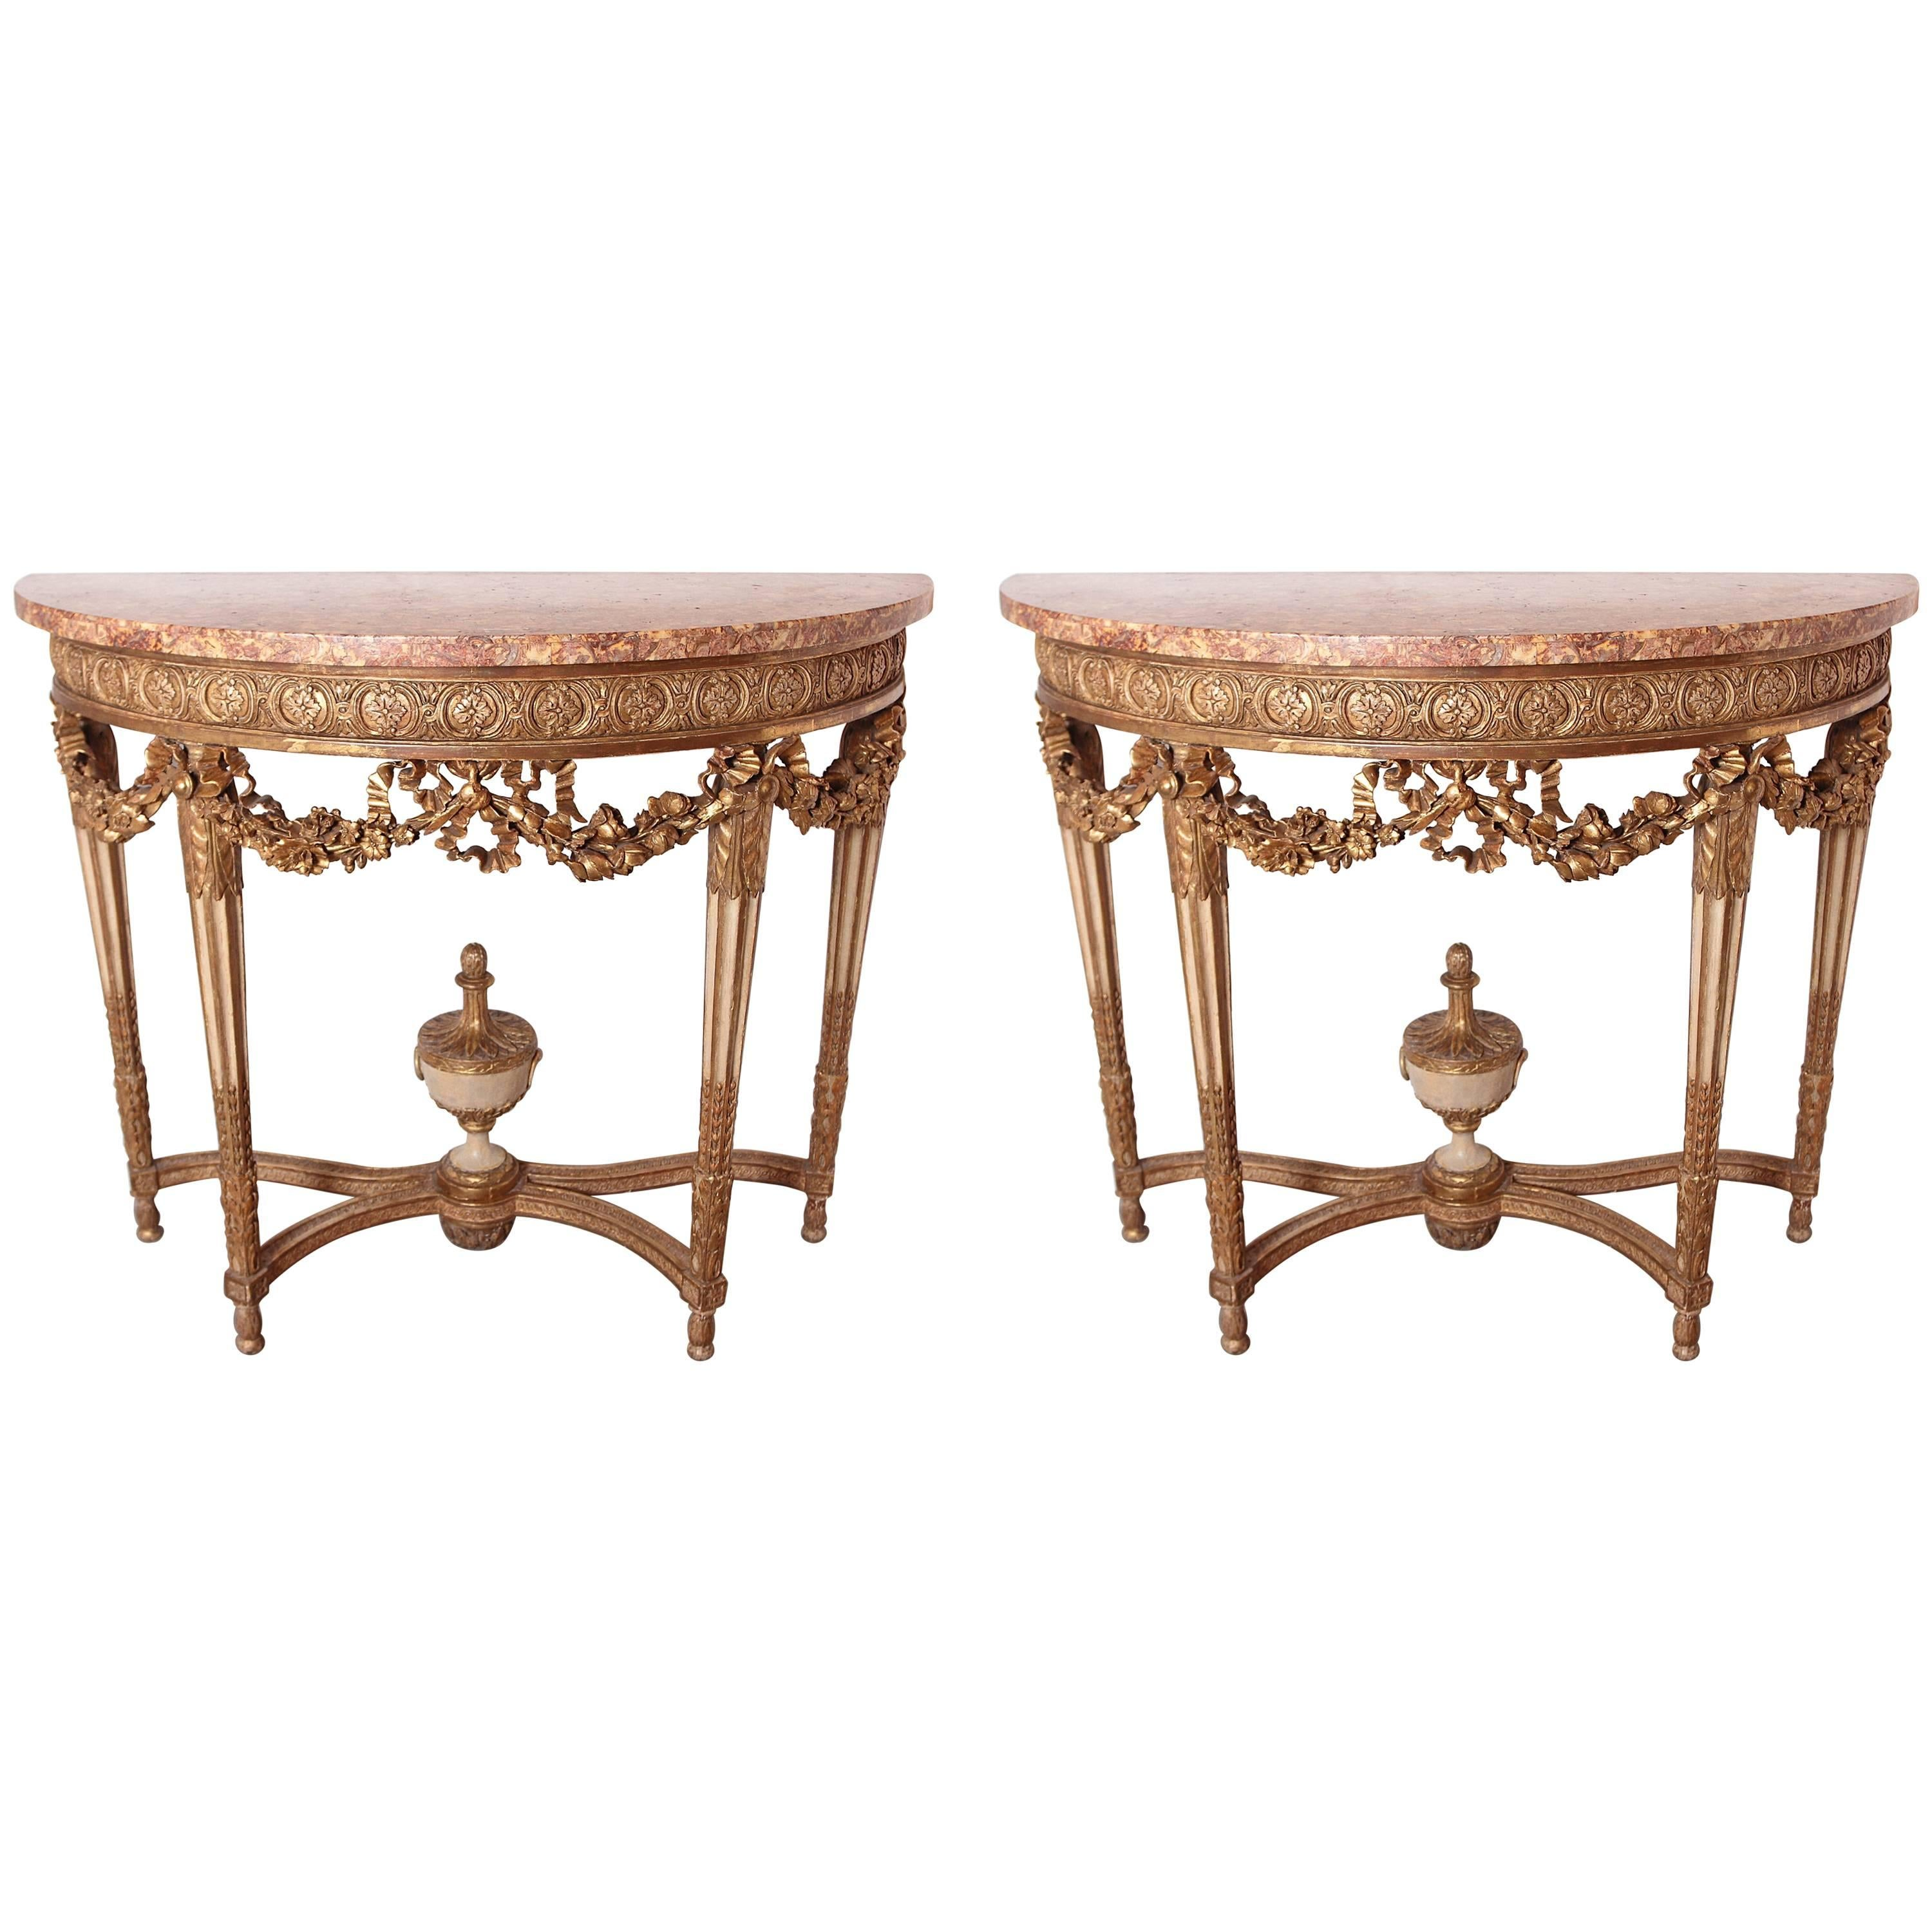 Early 19th Century French Louis XVI Gilt Carved and Cream Painted Consoles, Pair